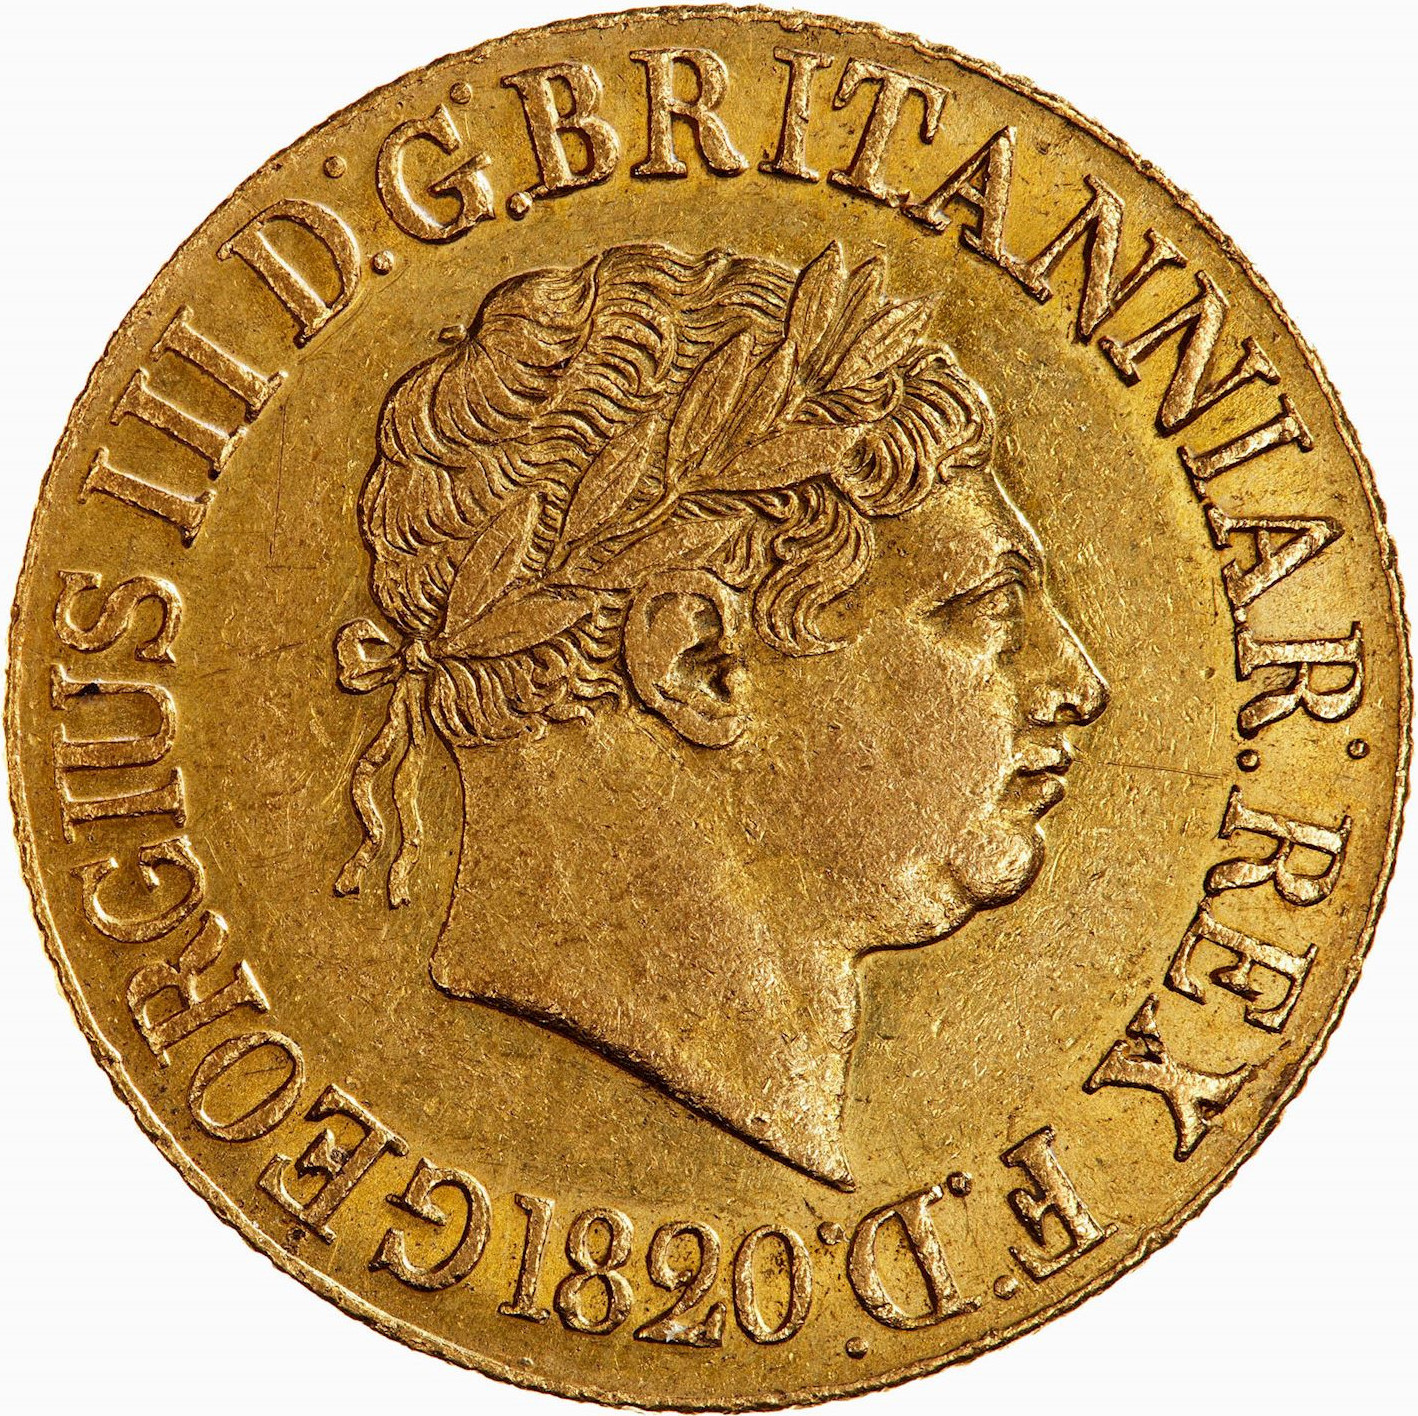 Sovereign (Pre-Decimal): Photo Coin - Sovereign, George III, Great Britain, 1820